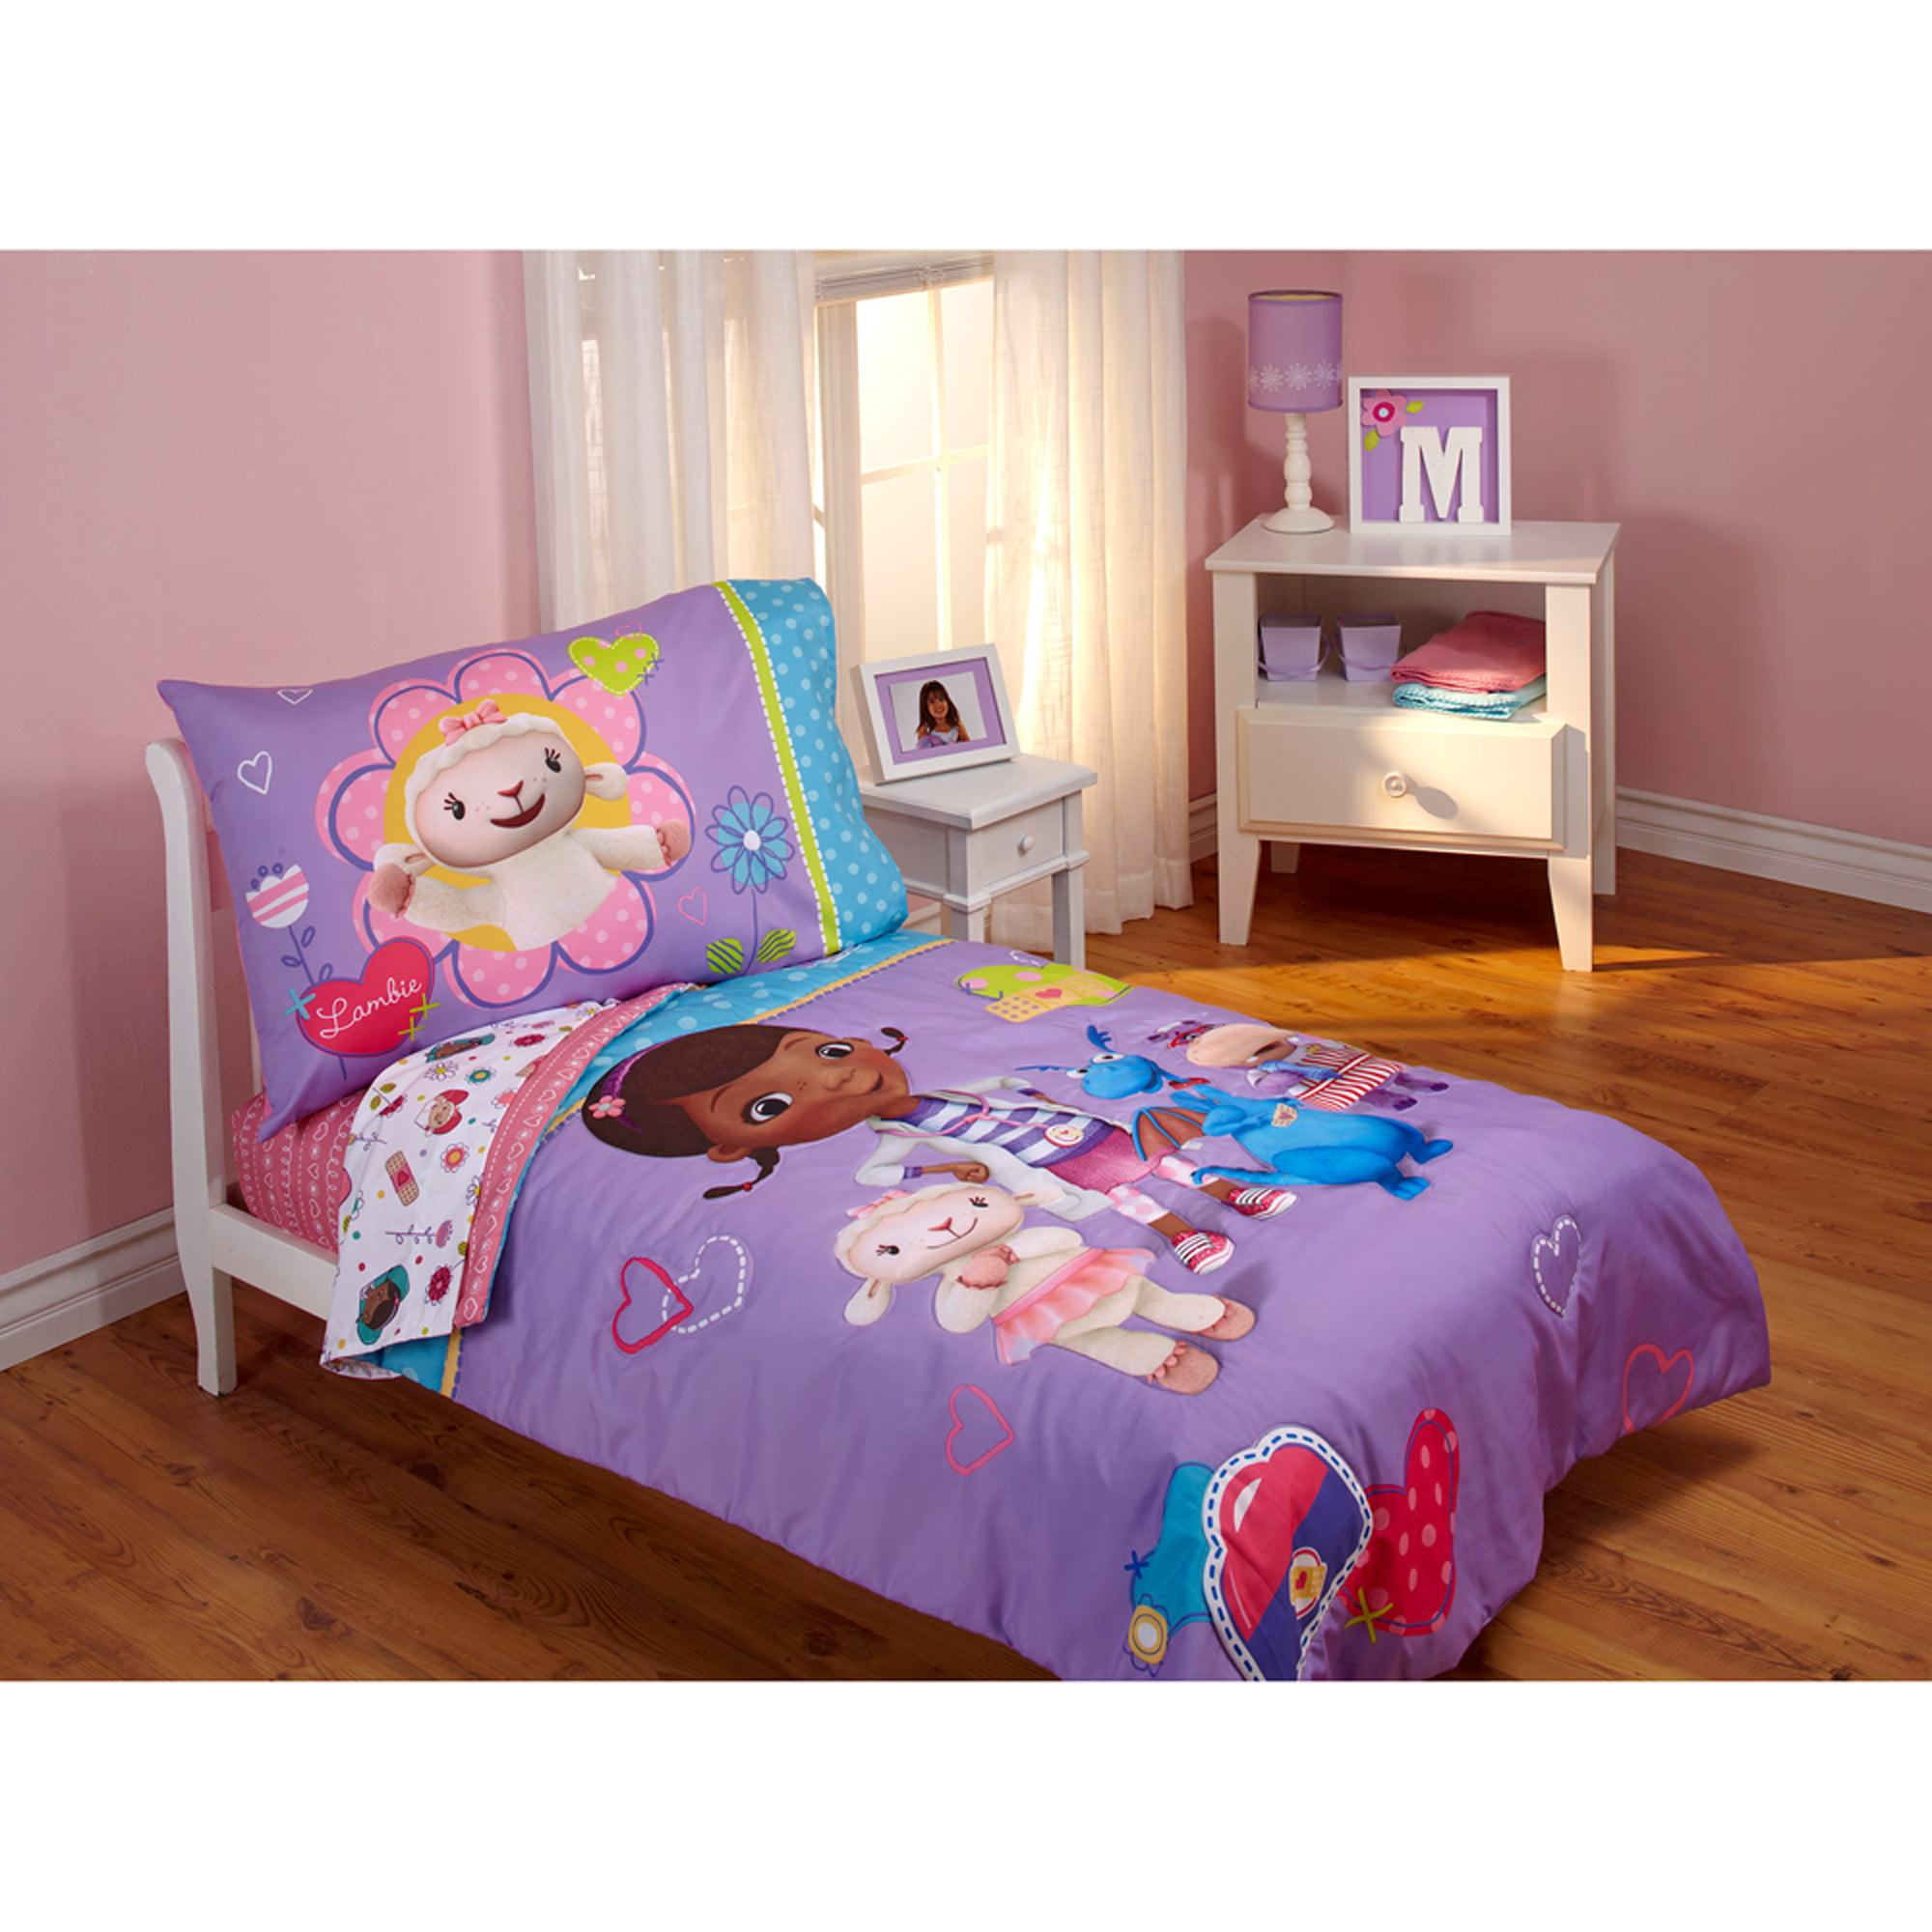 Disney Doc McStuffins Good As New 4 Piece Toddler Bedding Set   Walmart.com